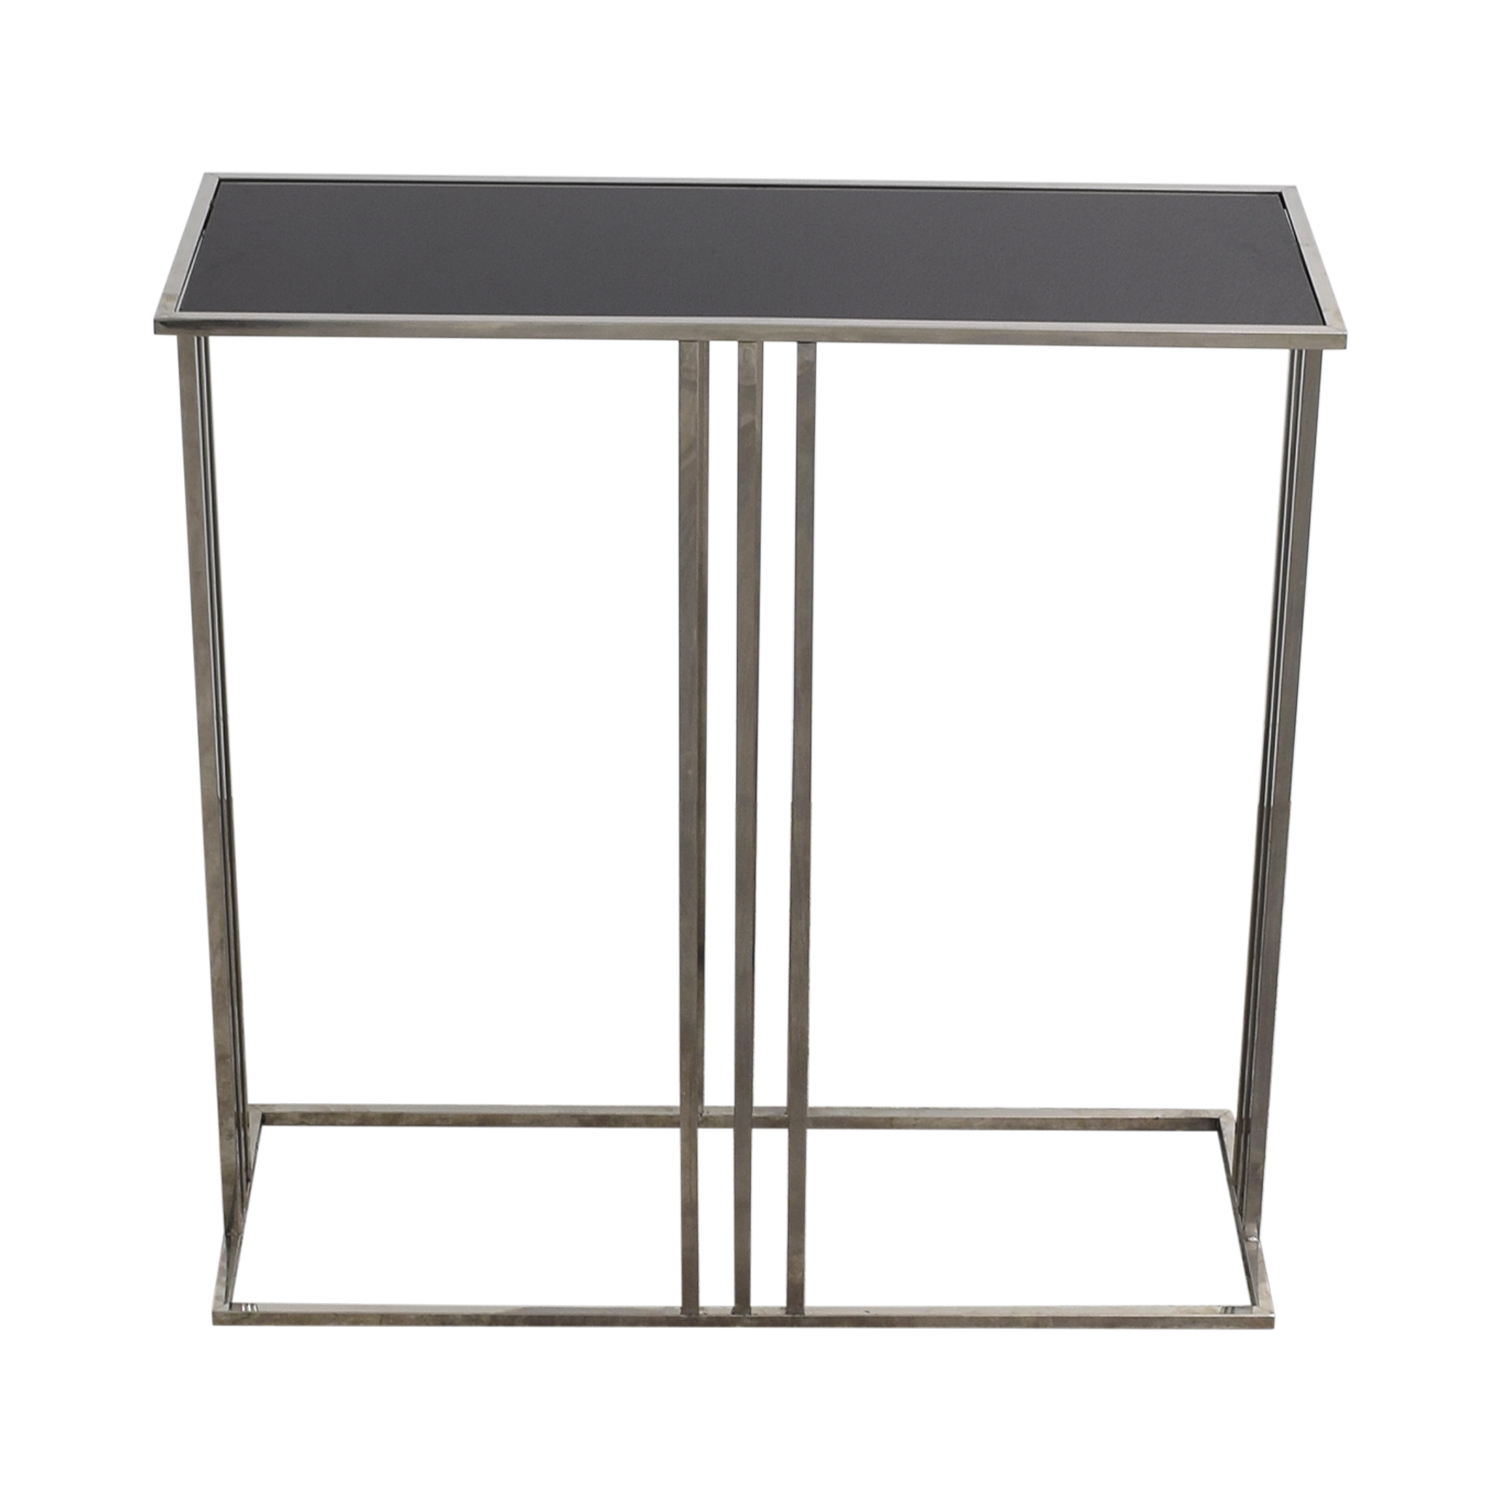 HomeGoods HomeGoods Black and Silver Entryway Table Tables